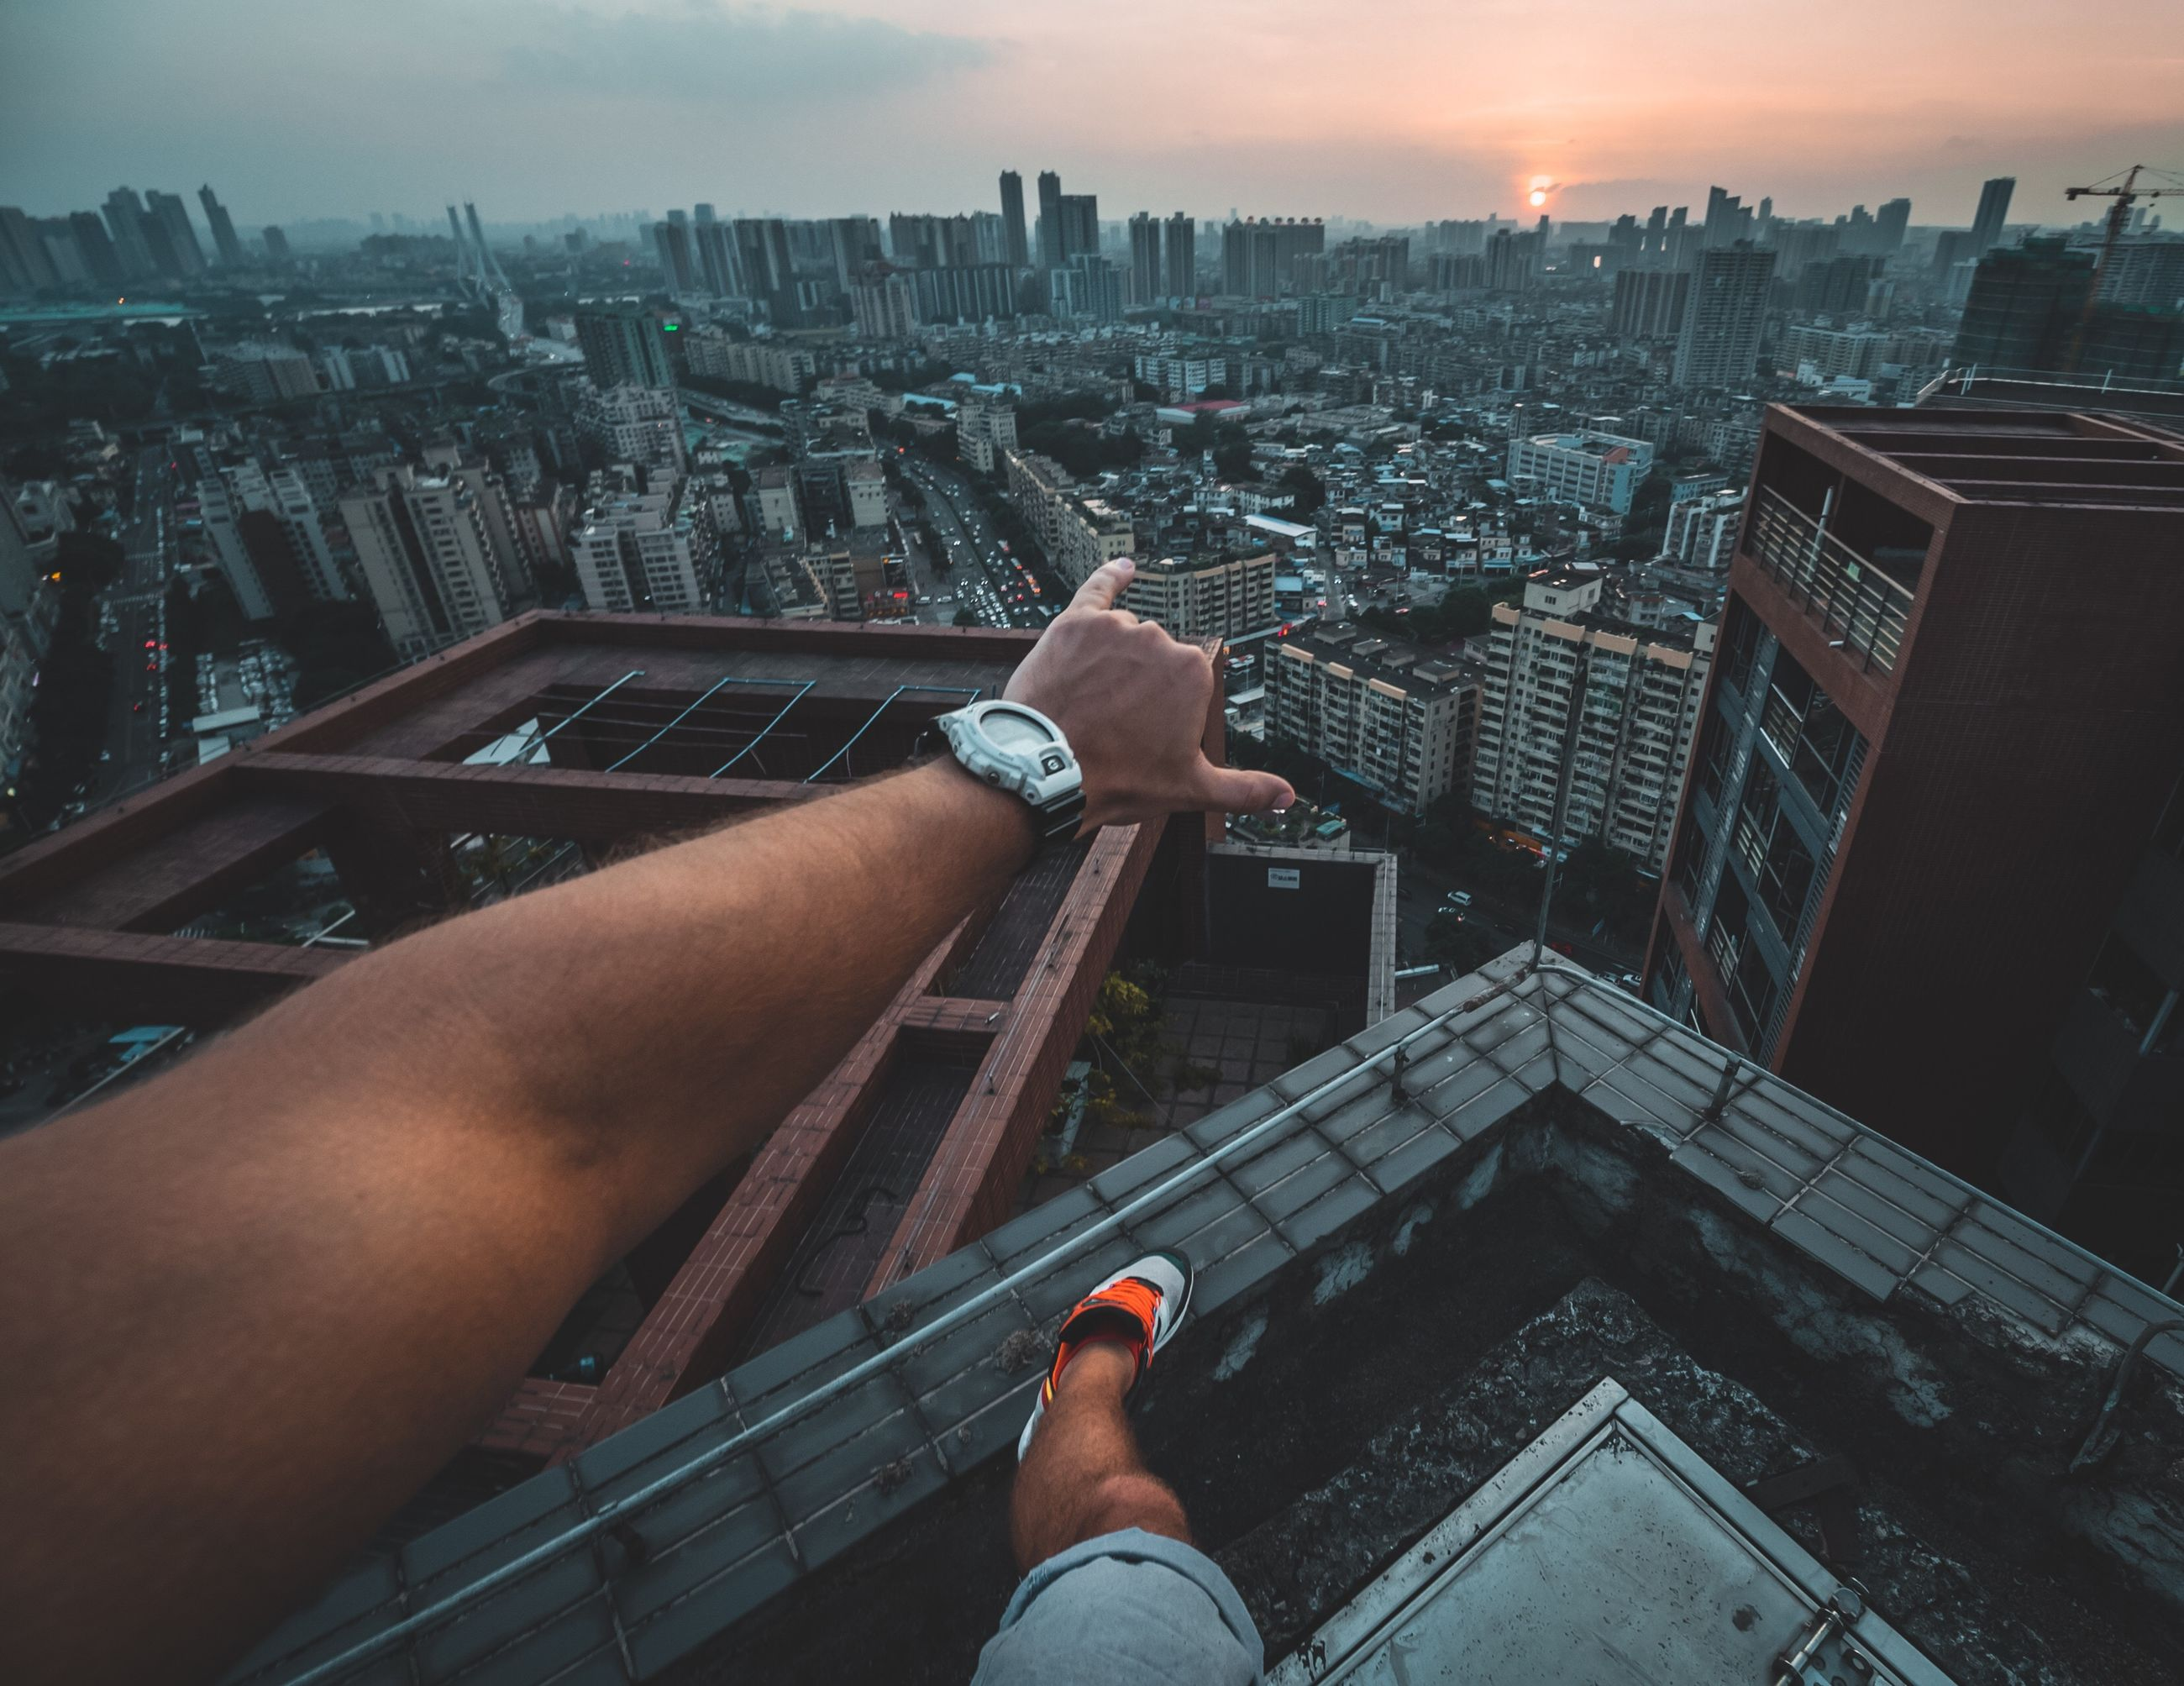 architecture, built structure, city, building exterior, cityscape, real people, one person, sky, hand, human hand, lifestyles, building, high angle view, human body part, men, personal perspective, nature, outdoors, residential district, office building exterior, skyscraper